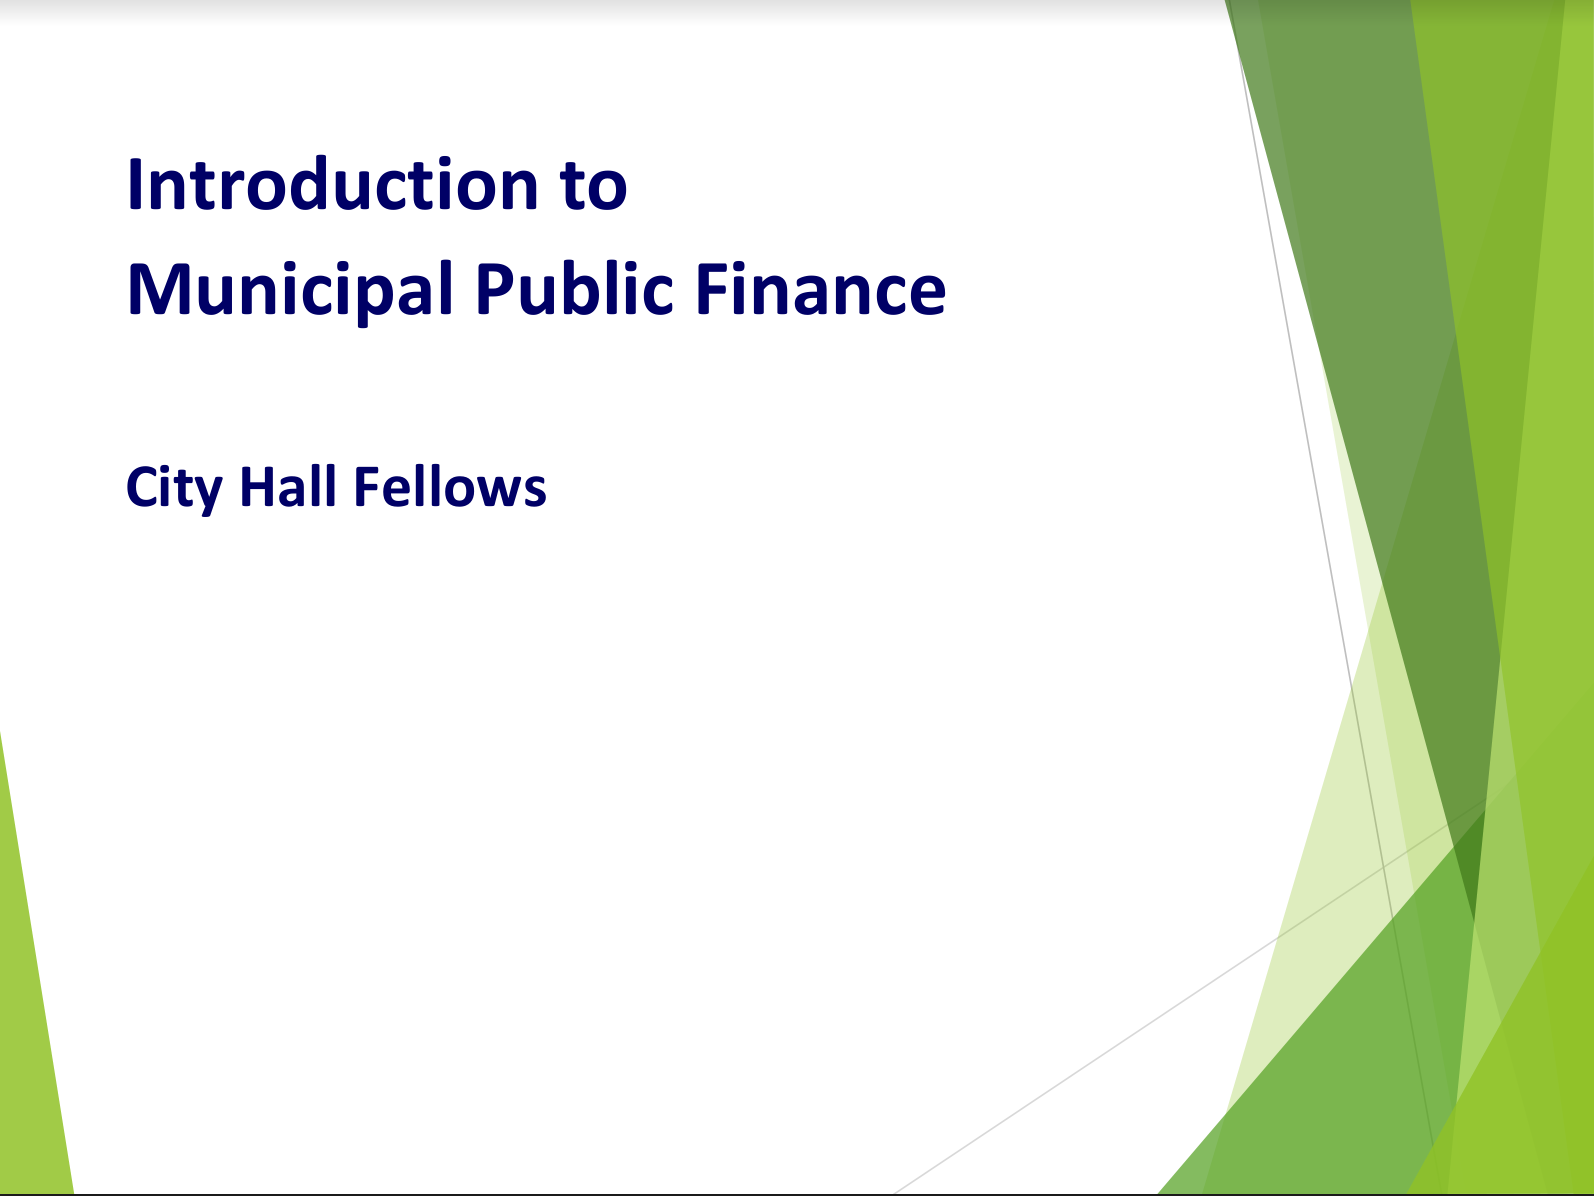 Introduction to Municipal Public Finance